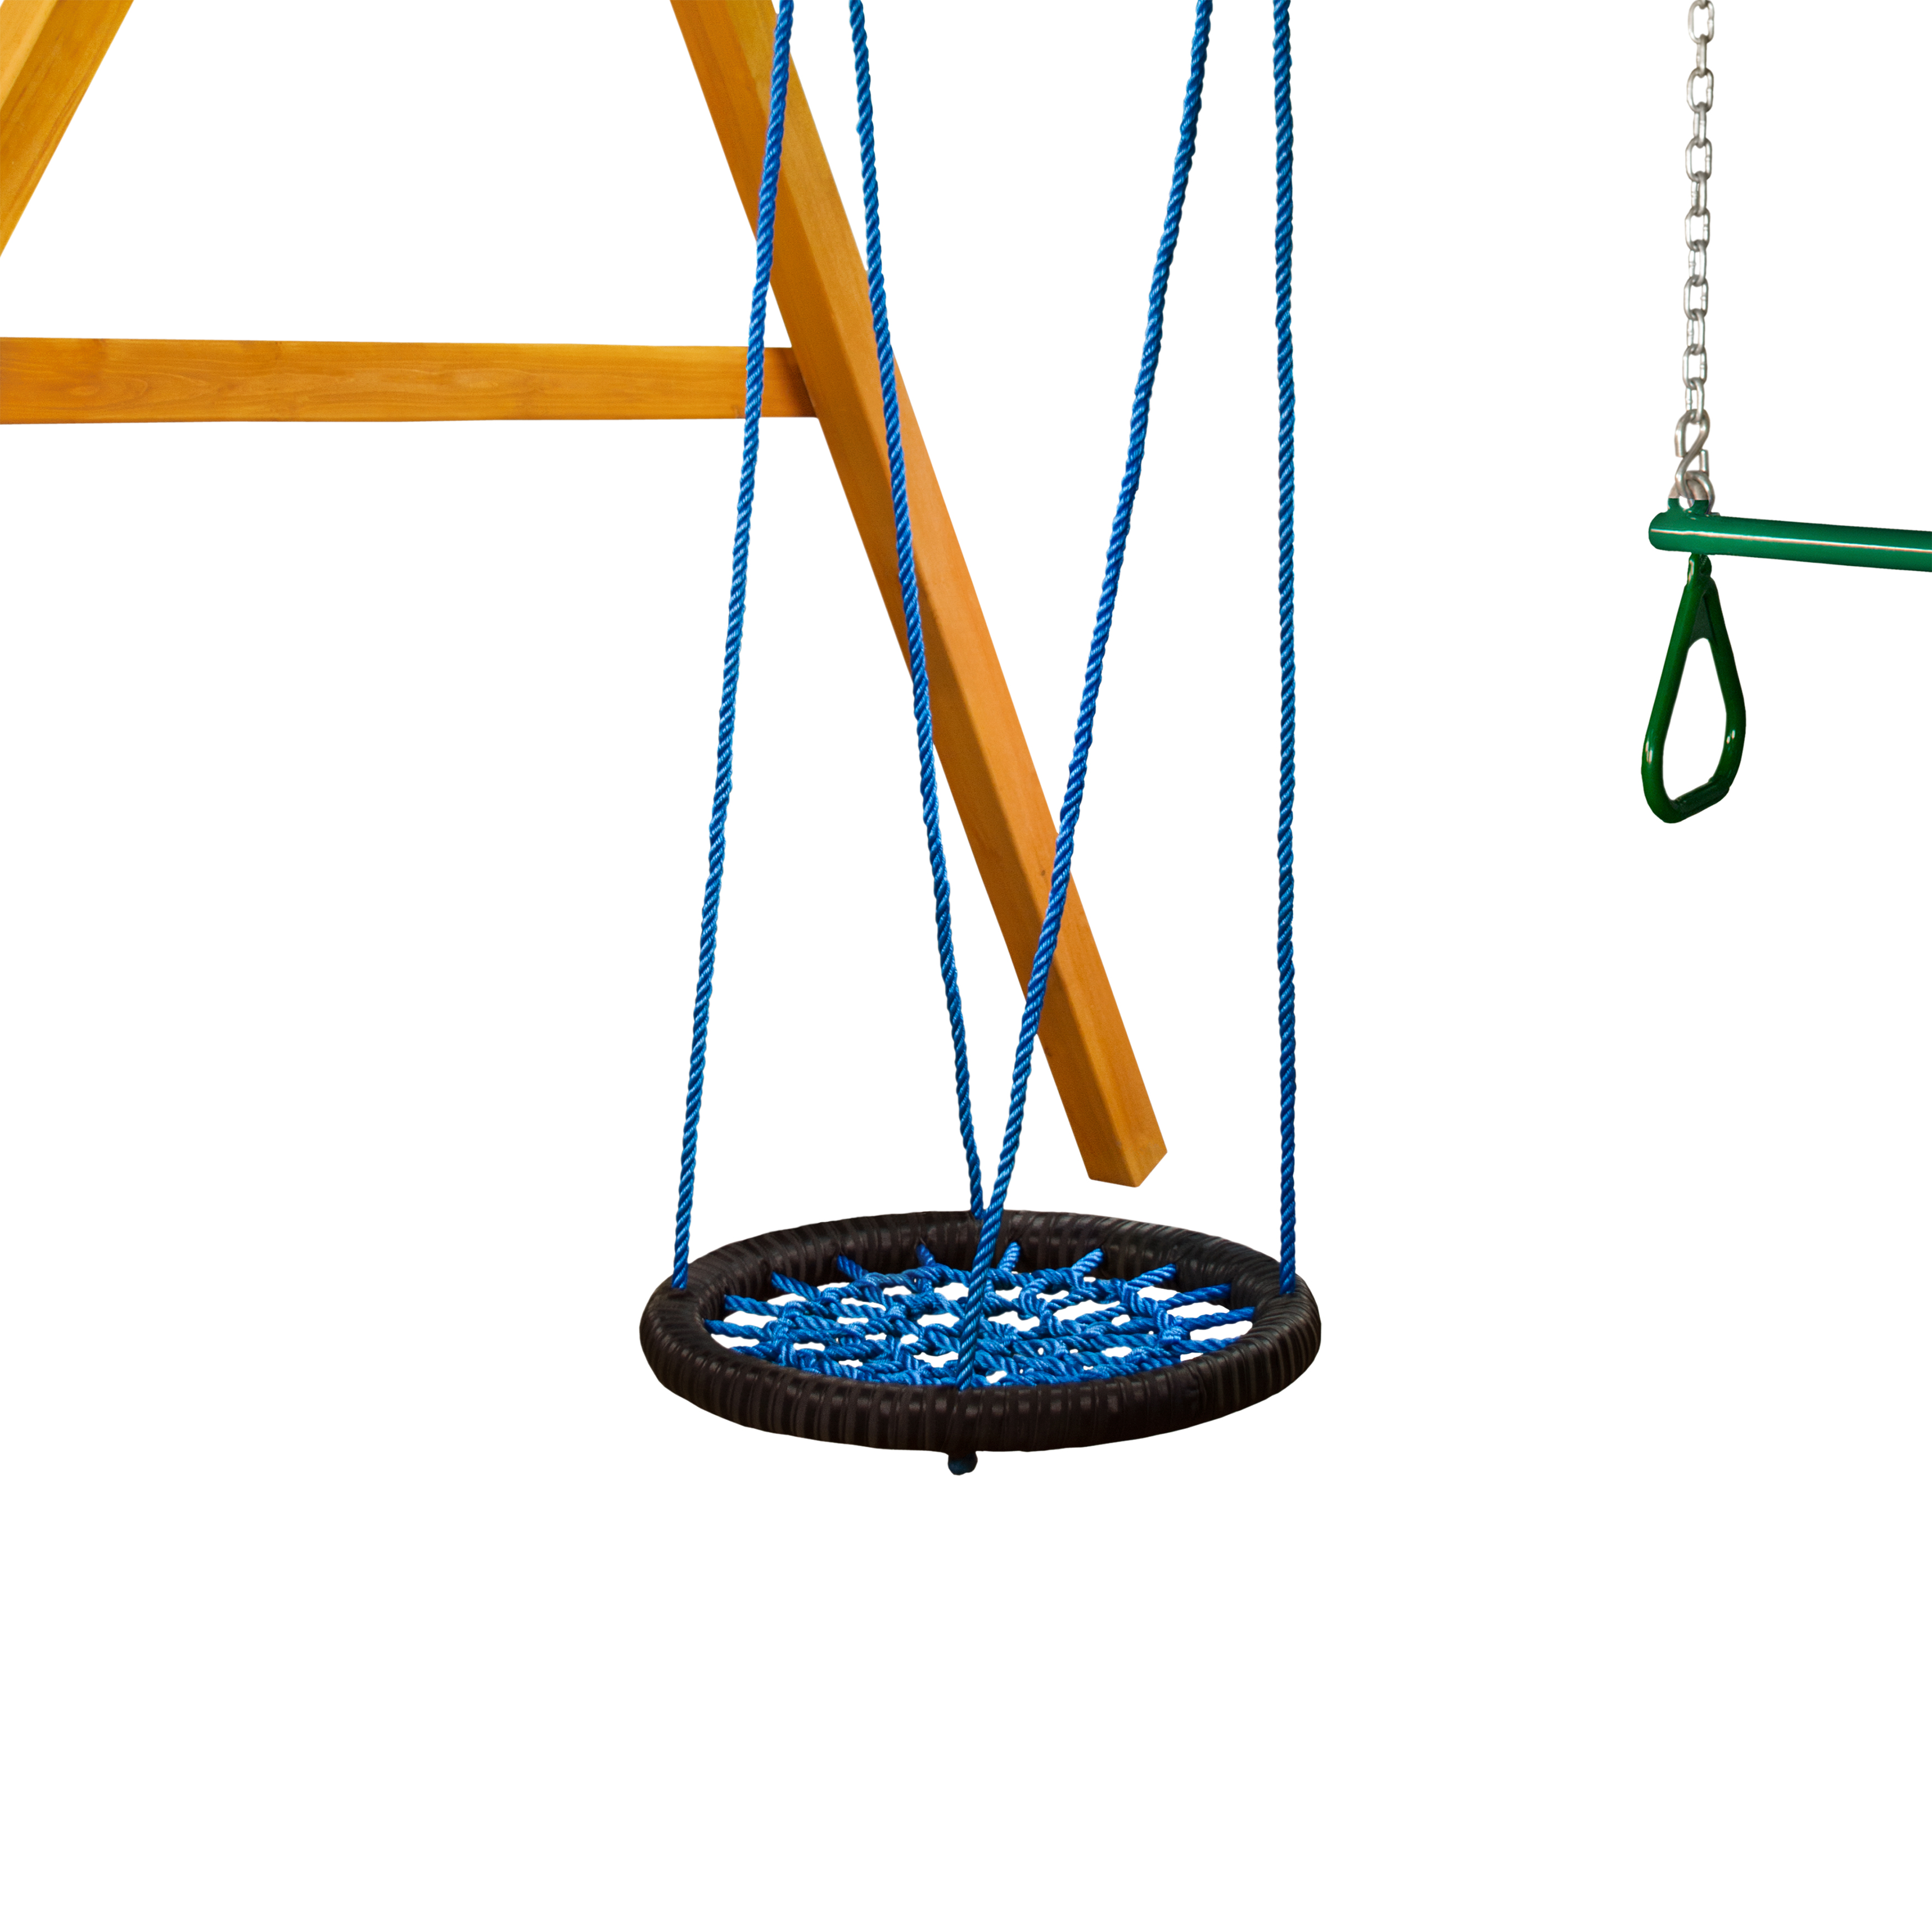 Gorilla Playsets Large Orbit Swing, Black with Blue Ropes